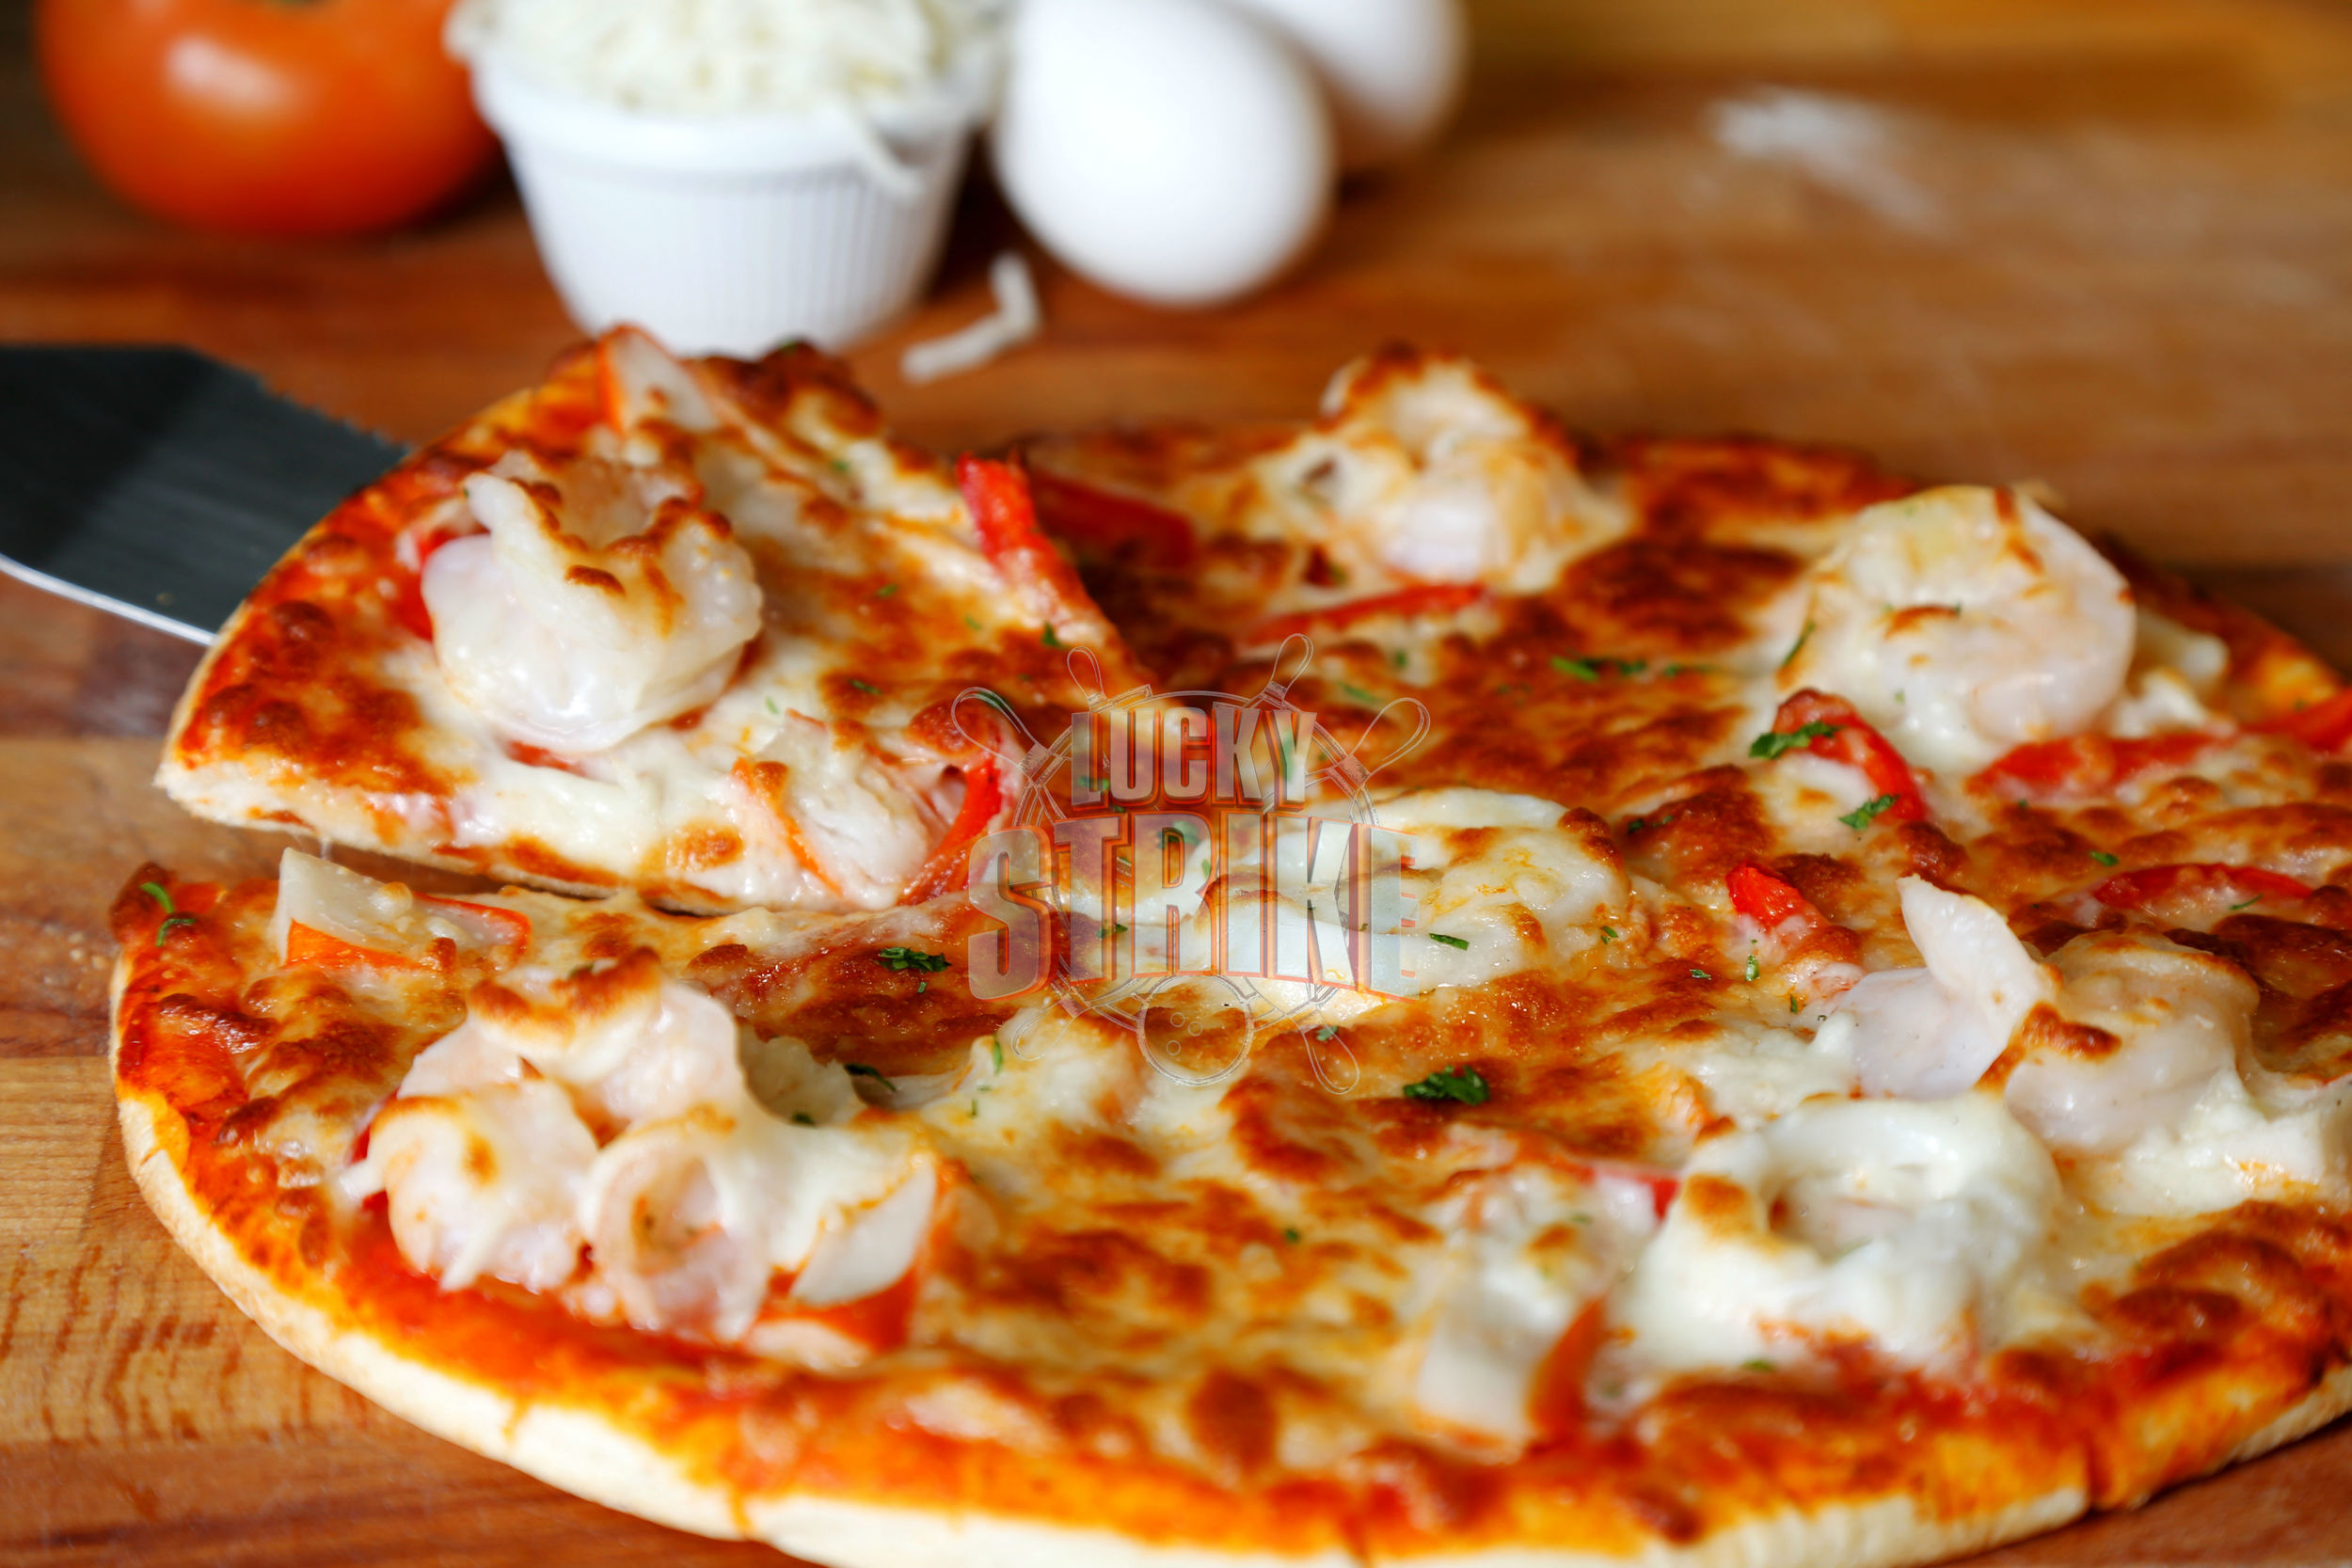 SEAFOOD PIZZA                                                      49/59    Freshly homemade dough topped with shrimp, crab, red & yellow capsicum, parsley, melted mozzarella cheese & Italian sauce